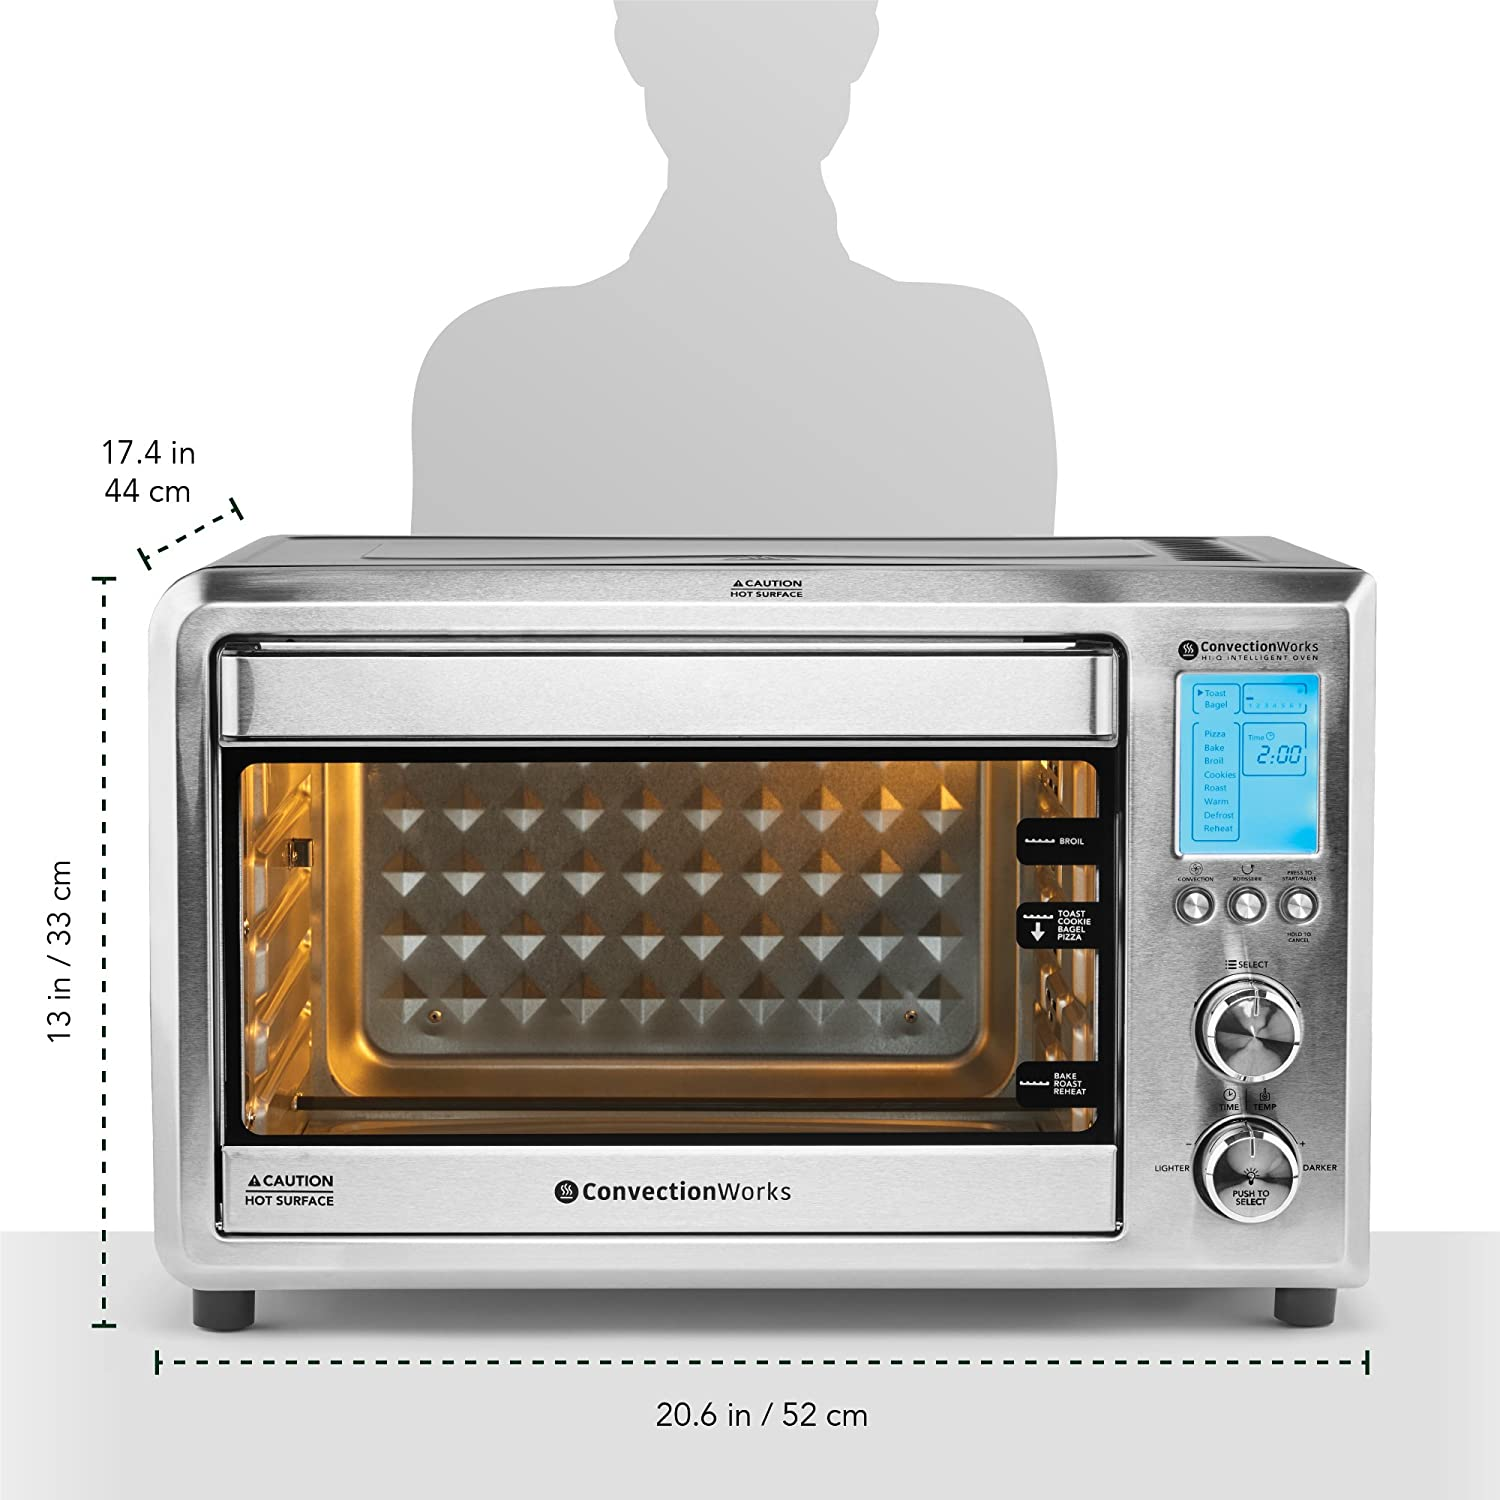 Convectionworks Hi Q Intelligent Countertop Oven Set 9 New Electric Need Help Connecting Wiresovenjpg Slice Xl Convection Toaster W Bamboo Cutting Board 10 Accessories